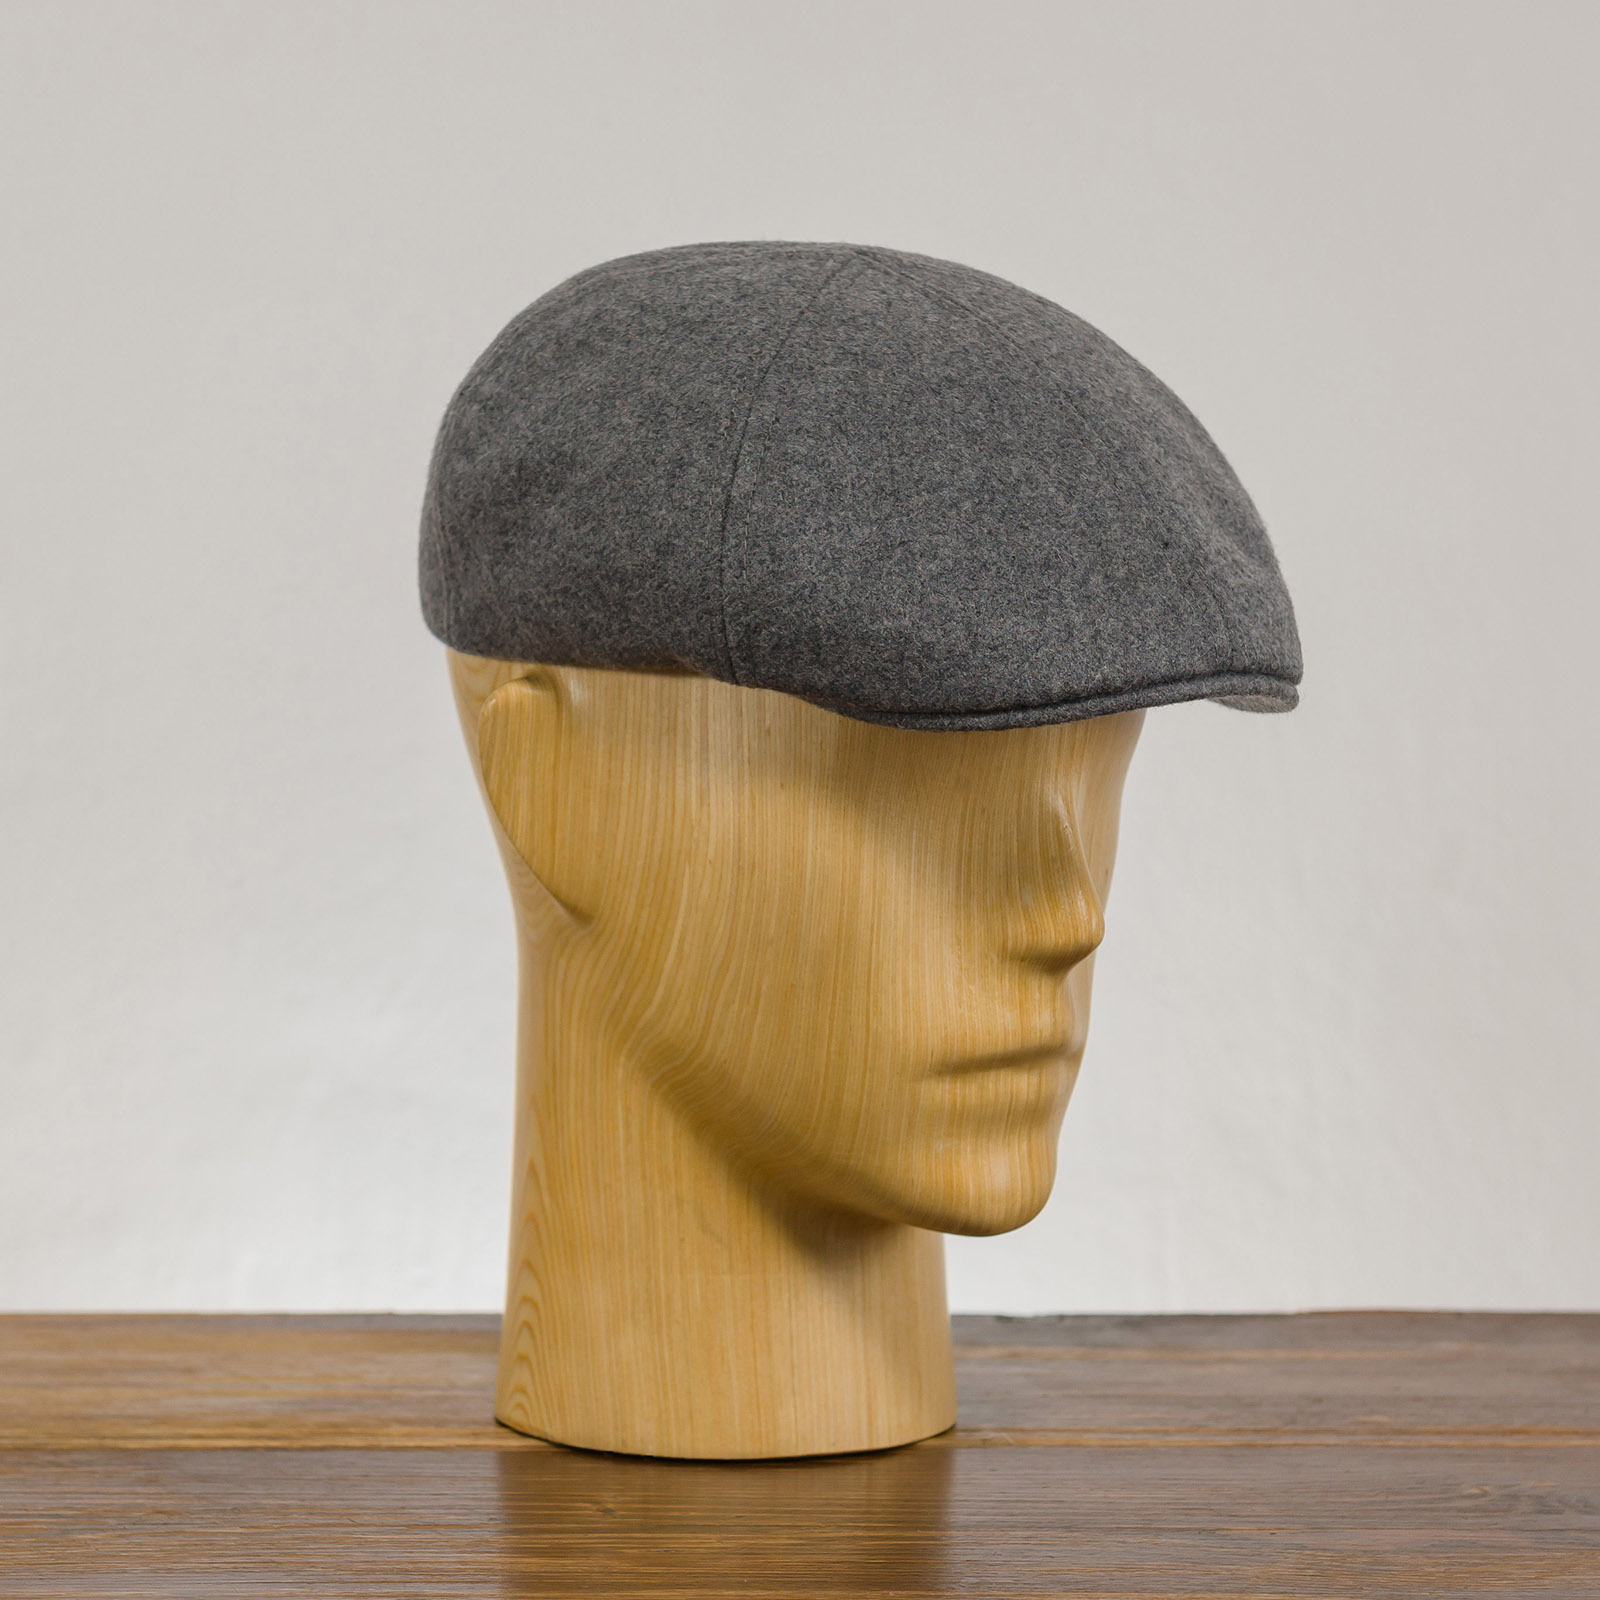 Duckbill warm wool winter driving ivy league cabby cap